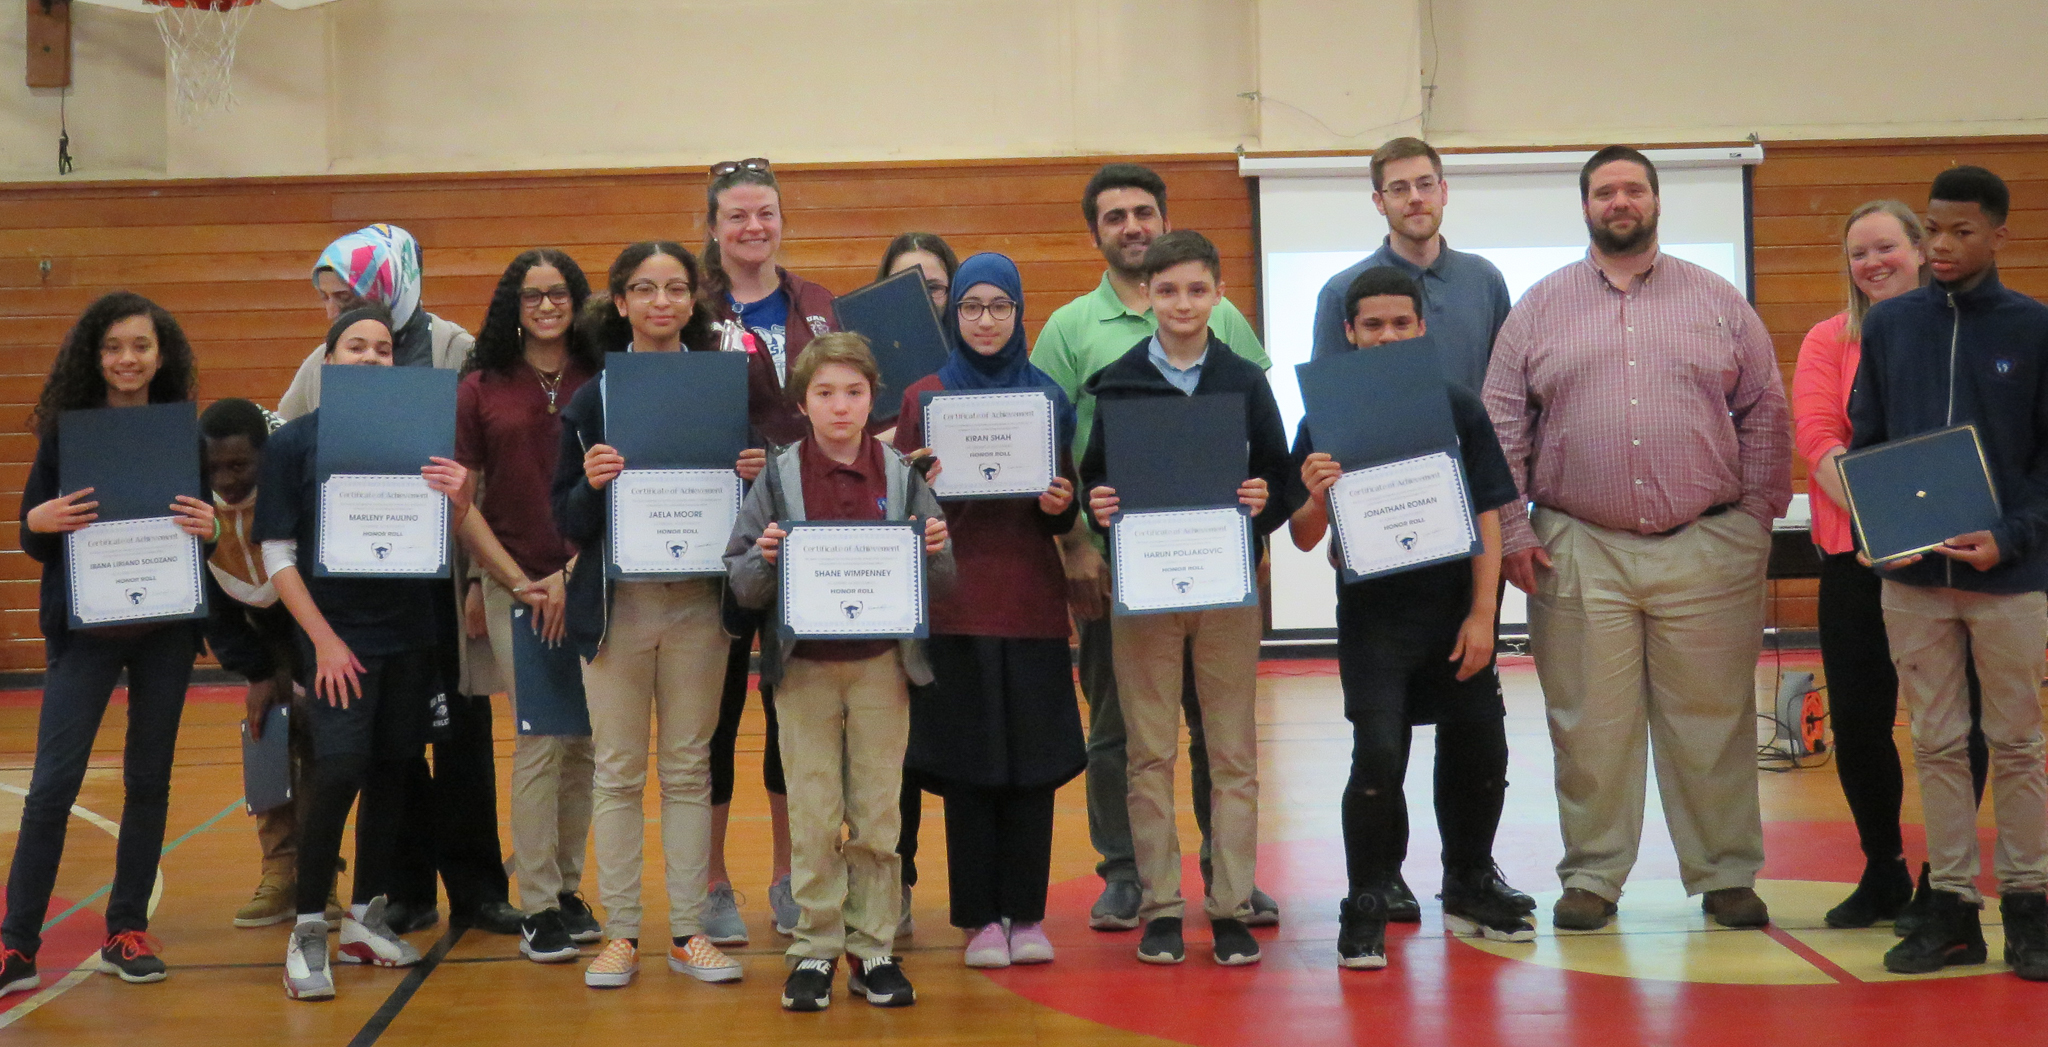 UASCS MS hosts 3rd MP Award Ceremony